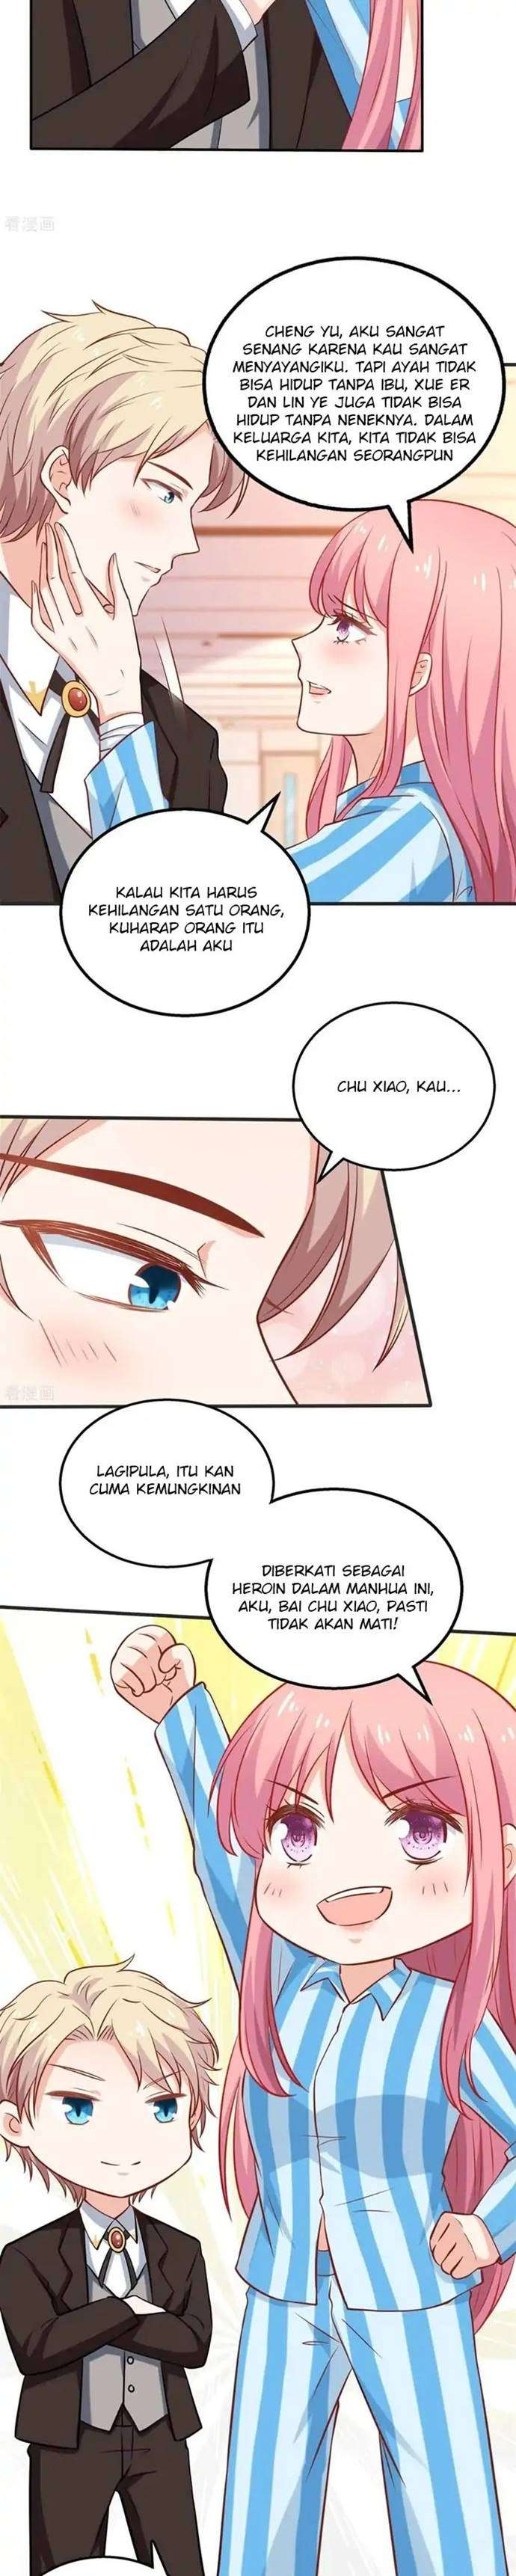 Take Your Mommy Home Chapter 304